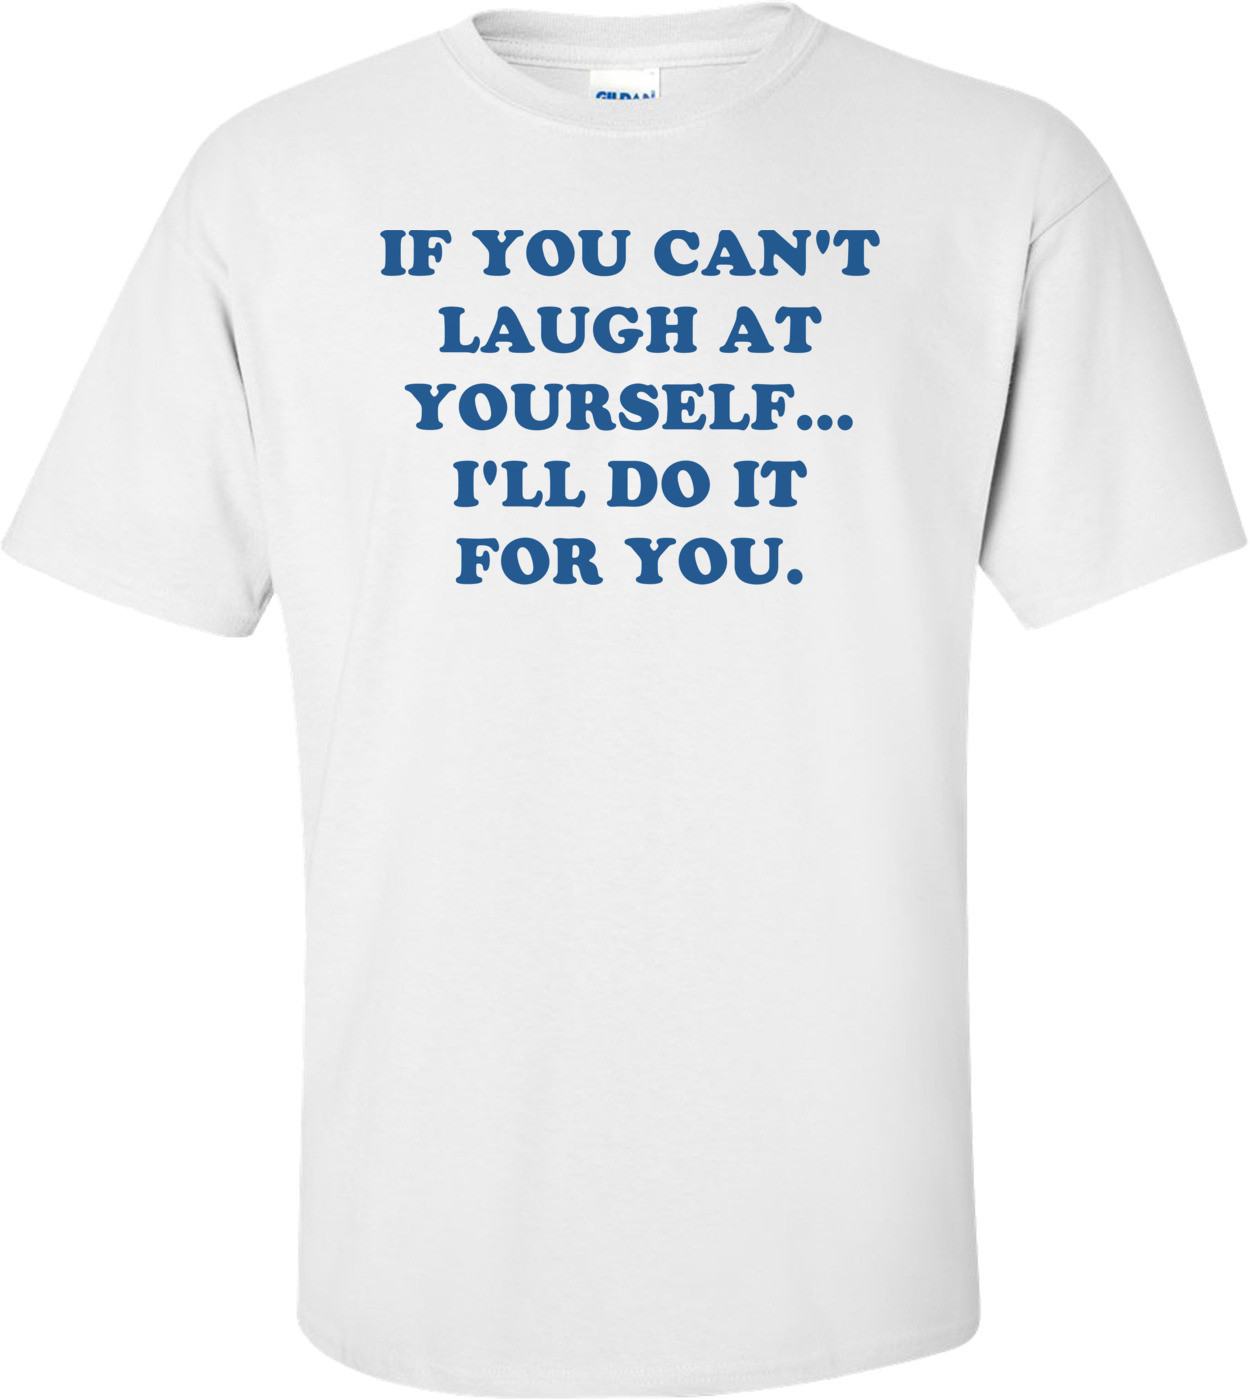 IF YOU CAN'T LAUGH AT YOURSELF... I'LL DO IT FOR YOU. Shirt